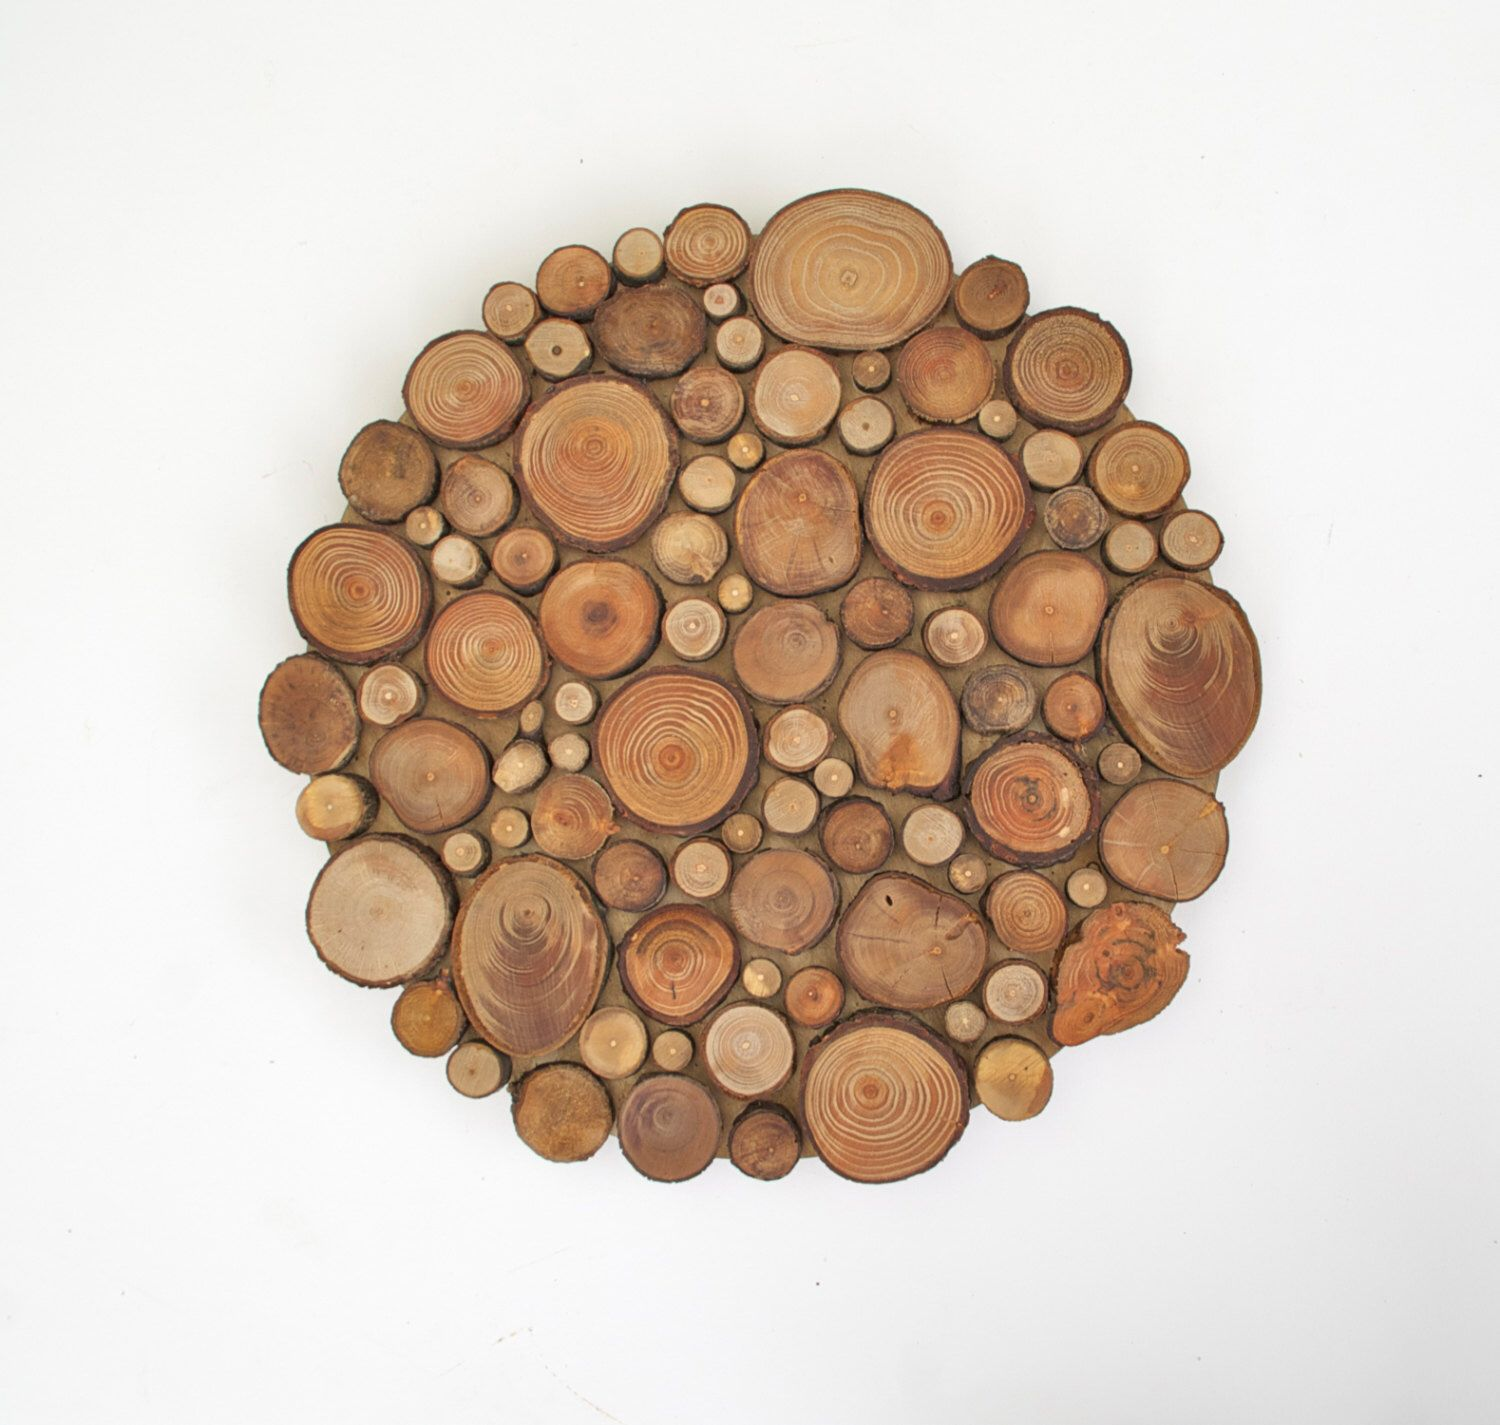 Rustic Circular Wood Tree Slice Centerpiece Decorative Wall Art Wooden Rounds Wood Slice by ElizaLenoreDesigns on Etsy https://www.etsy.com/listing/154286901/rustic-circular-wood-tree-slice